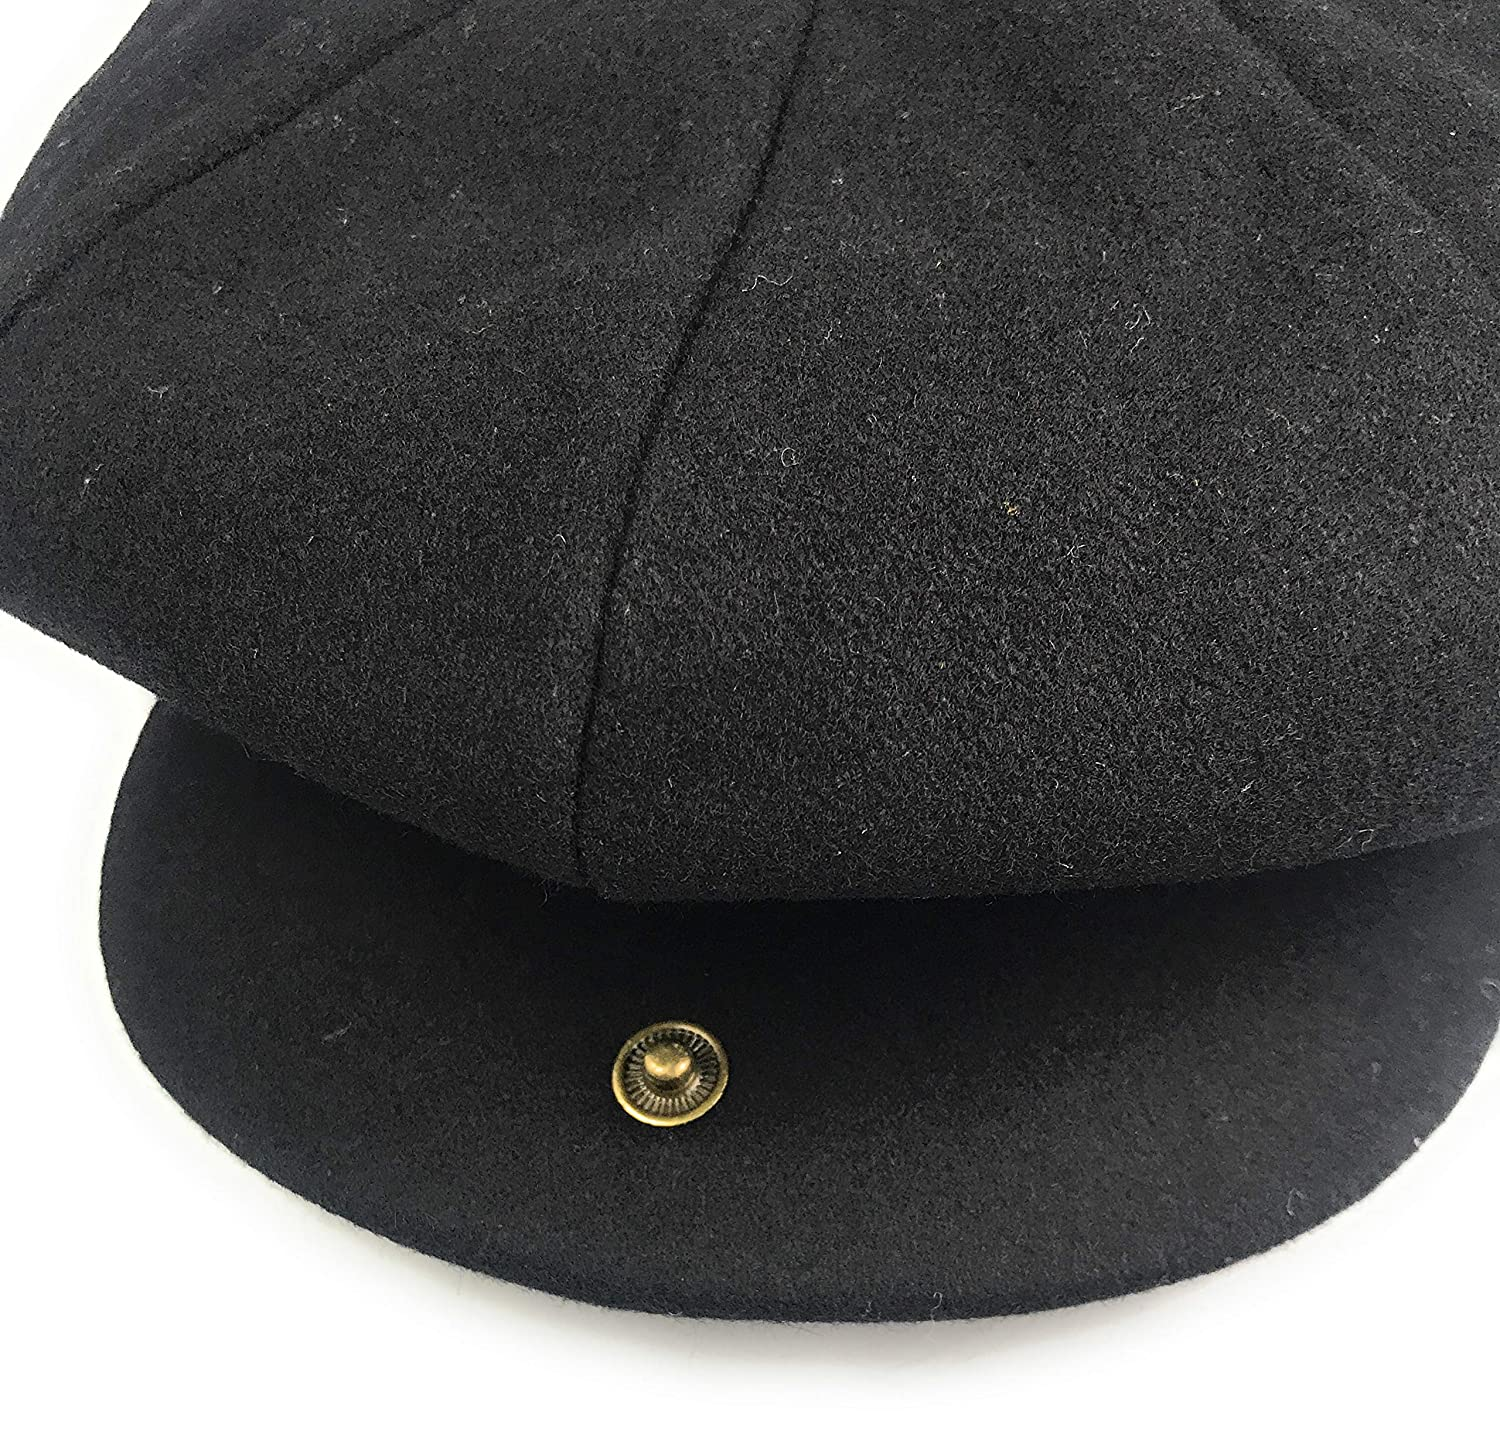 Hats of London Mens Newsboy Cap 8 Panel Black Baker Boy Flat Cap with Snap Button at The Front